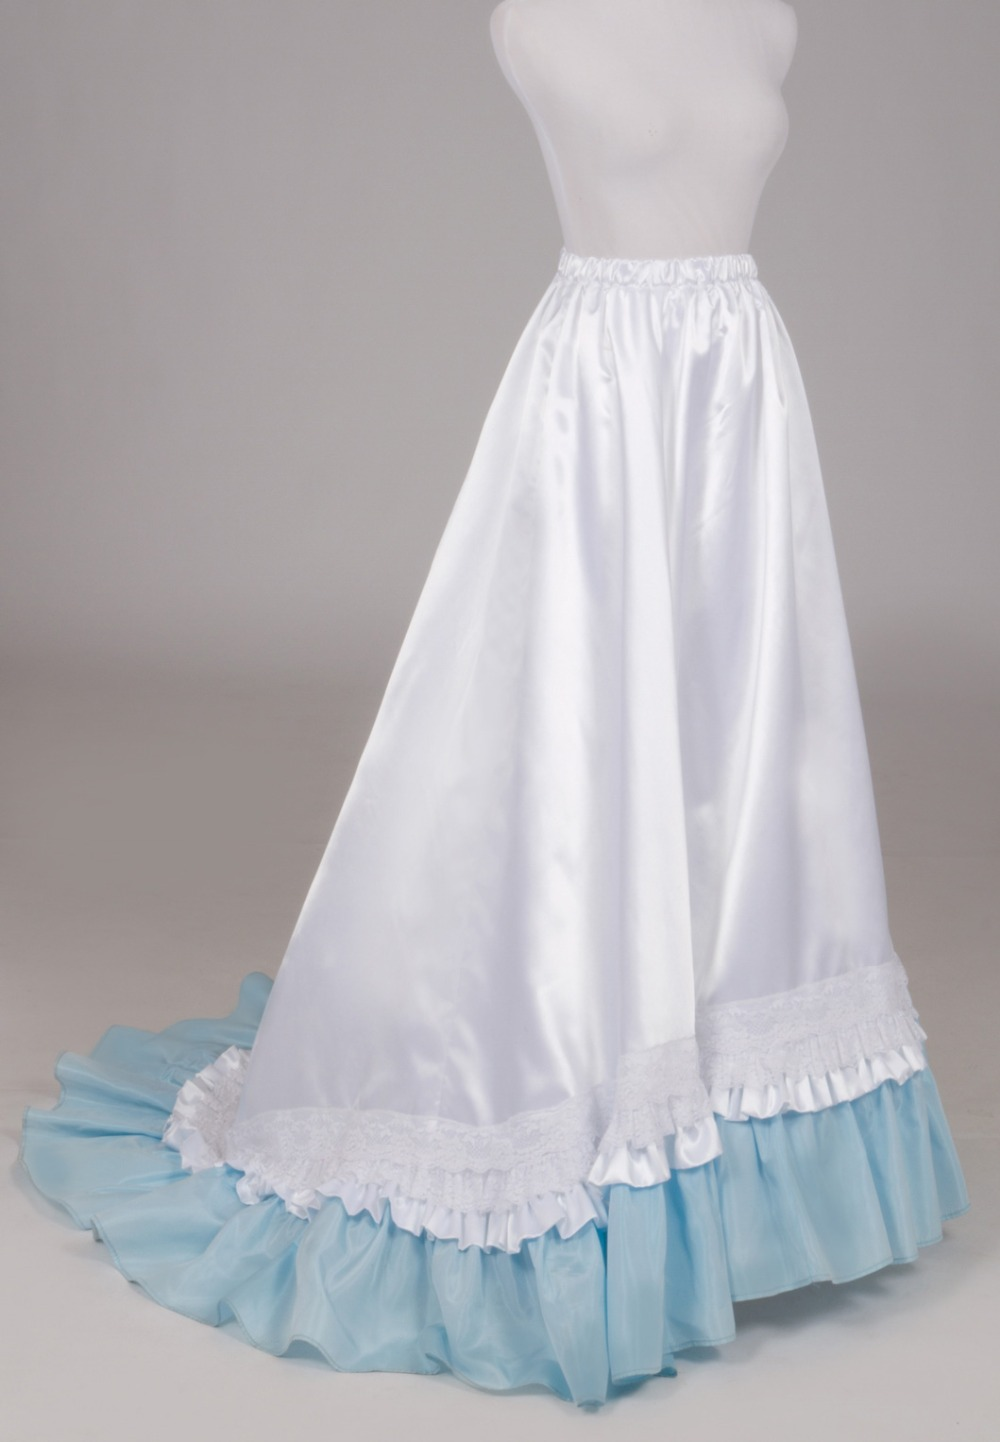 White&Blue Floor-Length Vintage Victorian Skirt Stage Costume Skirt